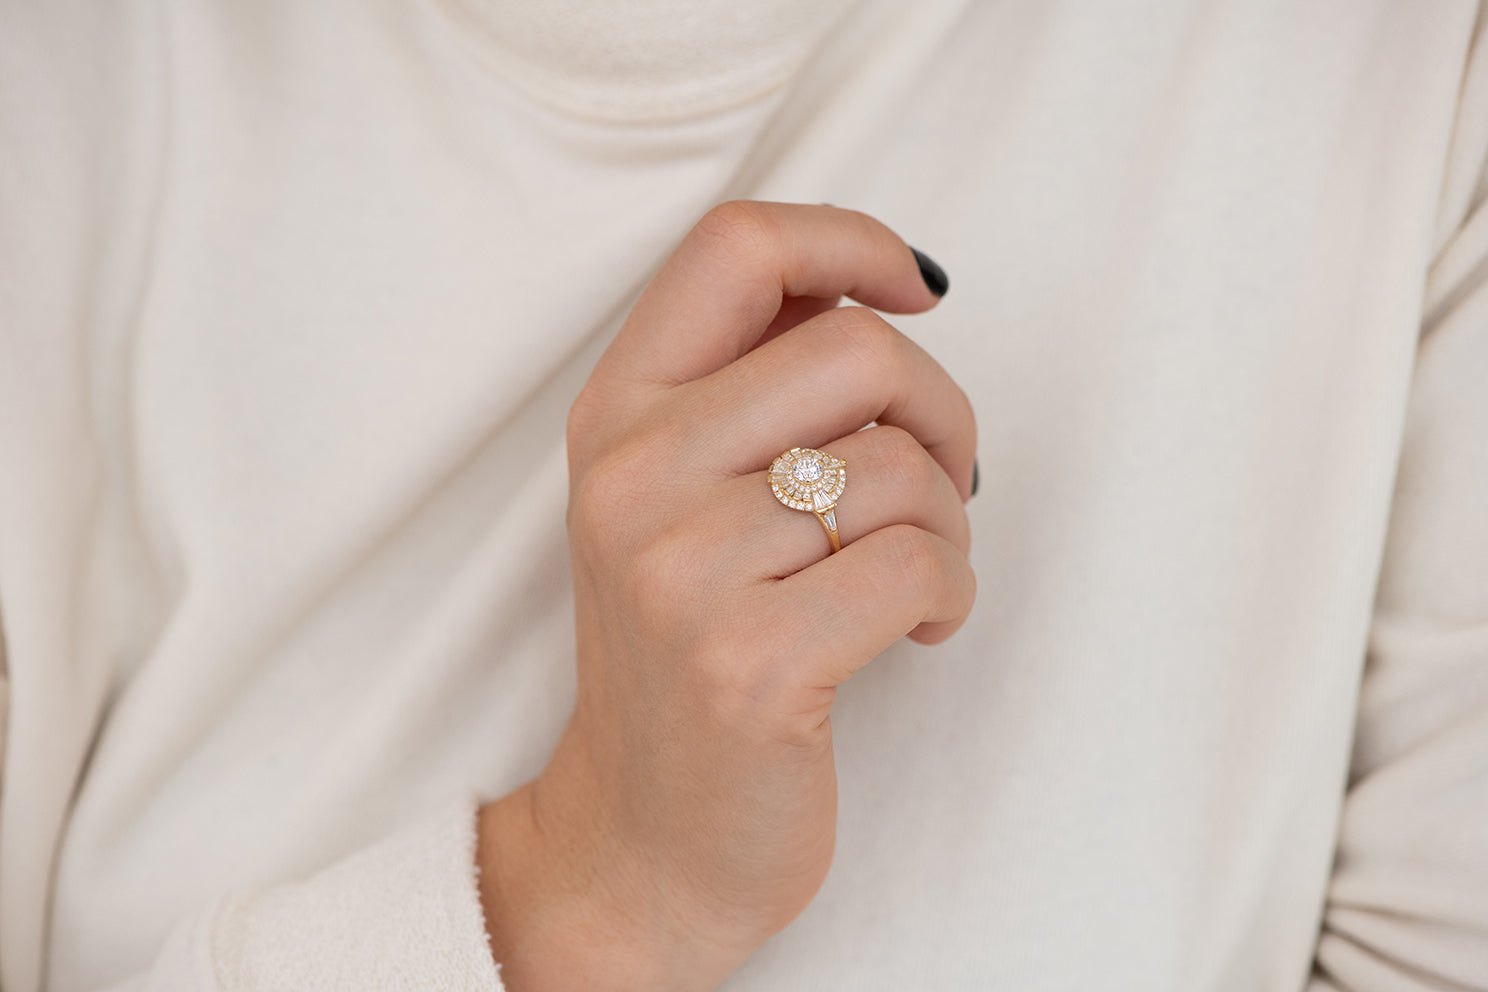 Round Diamond Cluster Ring with Asymmetric Frills Alternate Angle on Hand